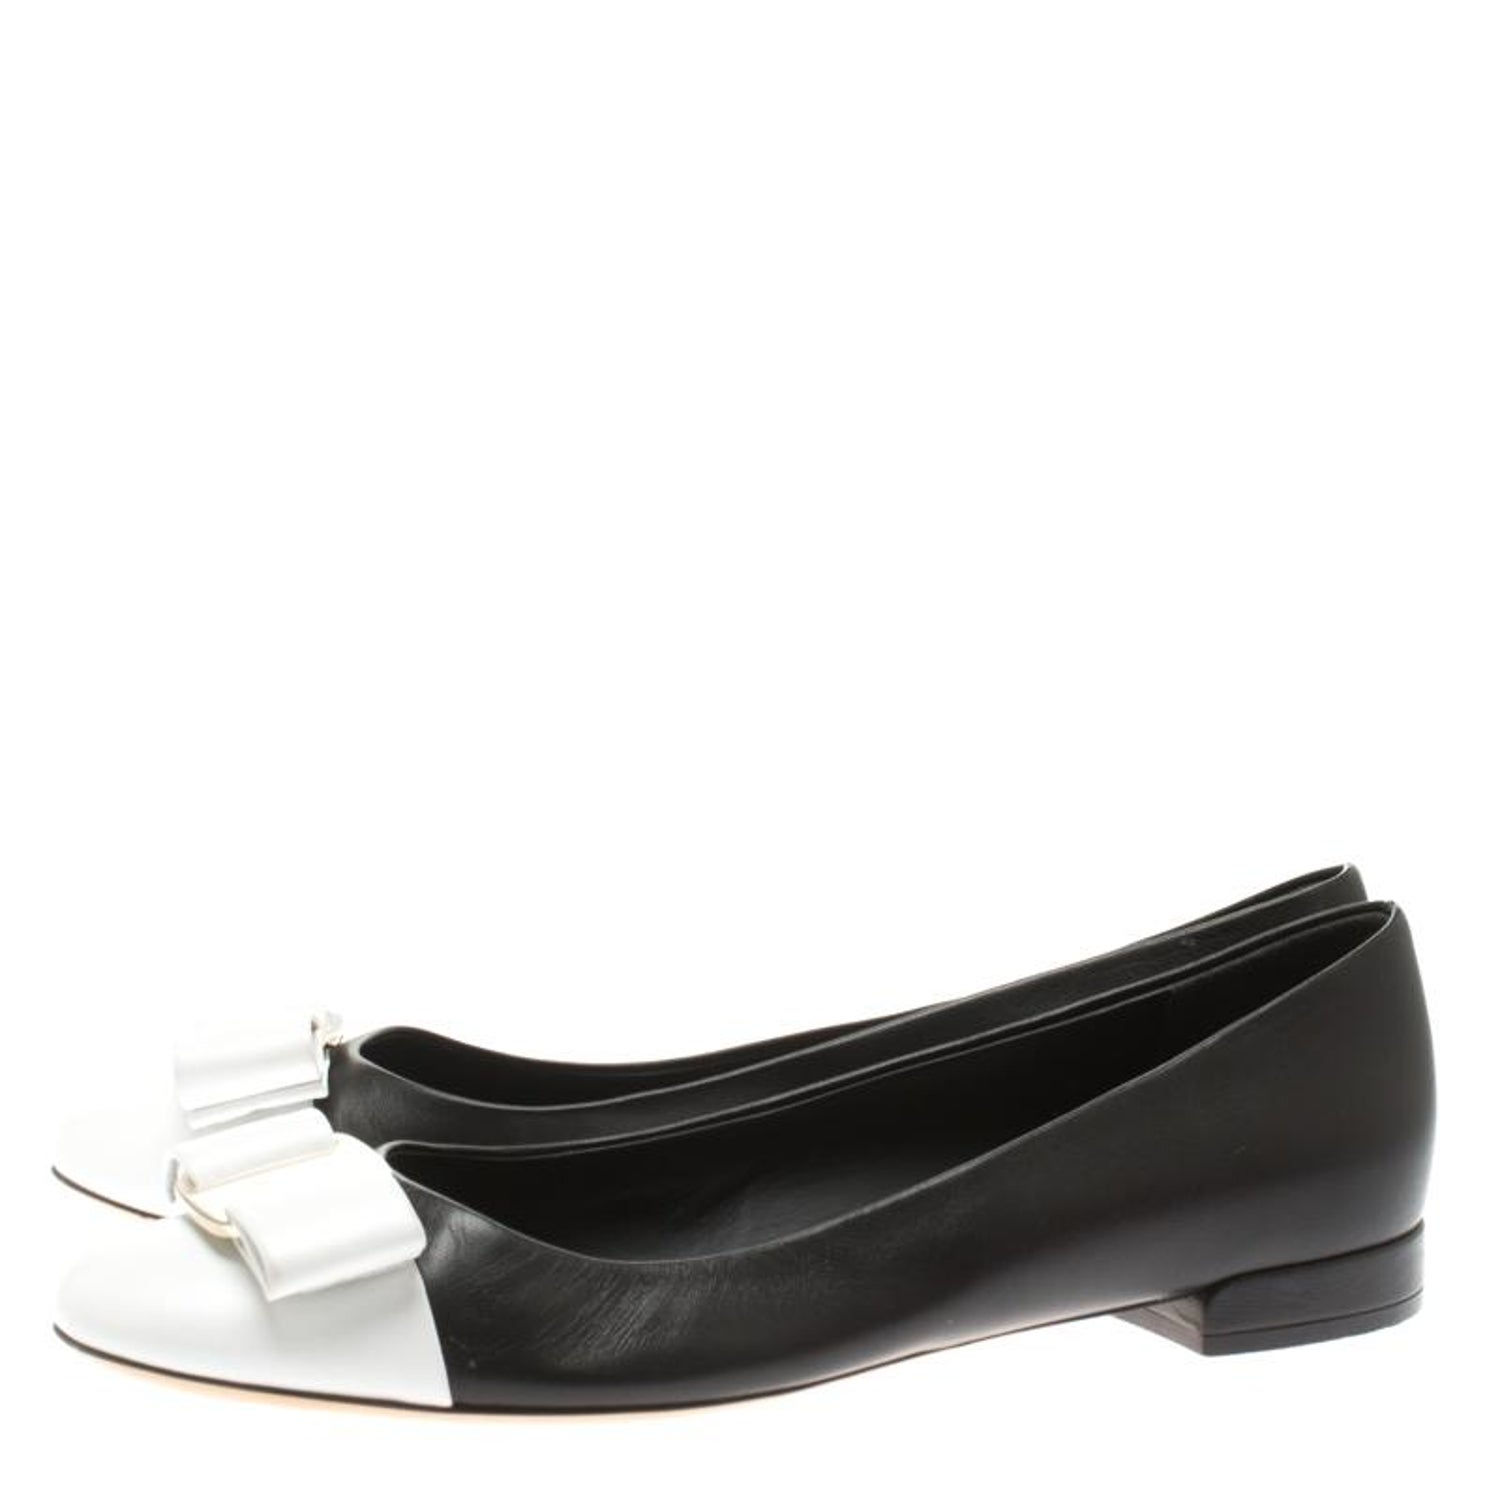 58df086c1 Salvatore Ferragamo Monochrome Leather Varina Ballet Flats Size 39 For Sale  at 1stdibs